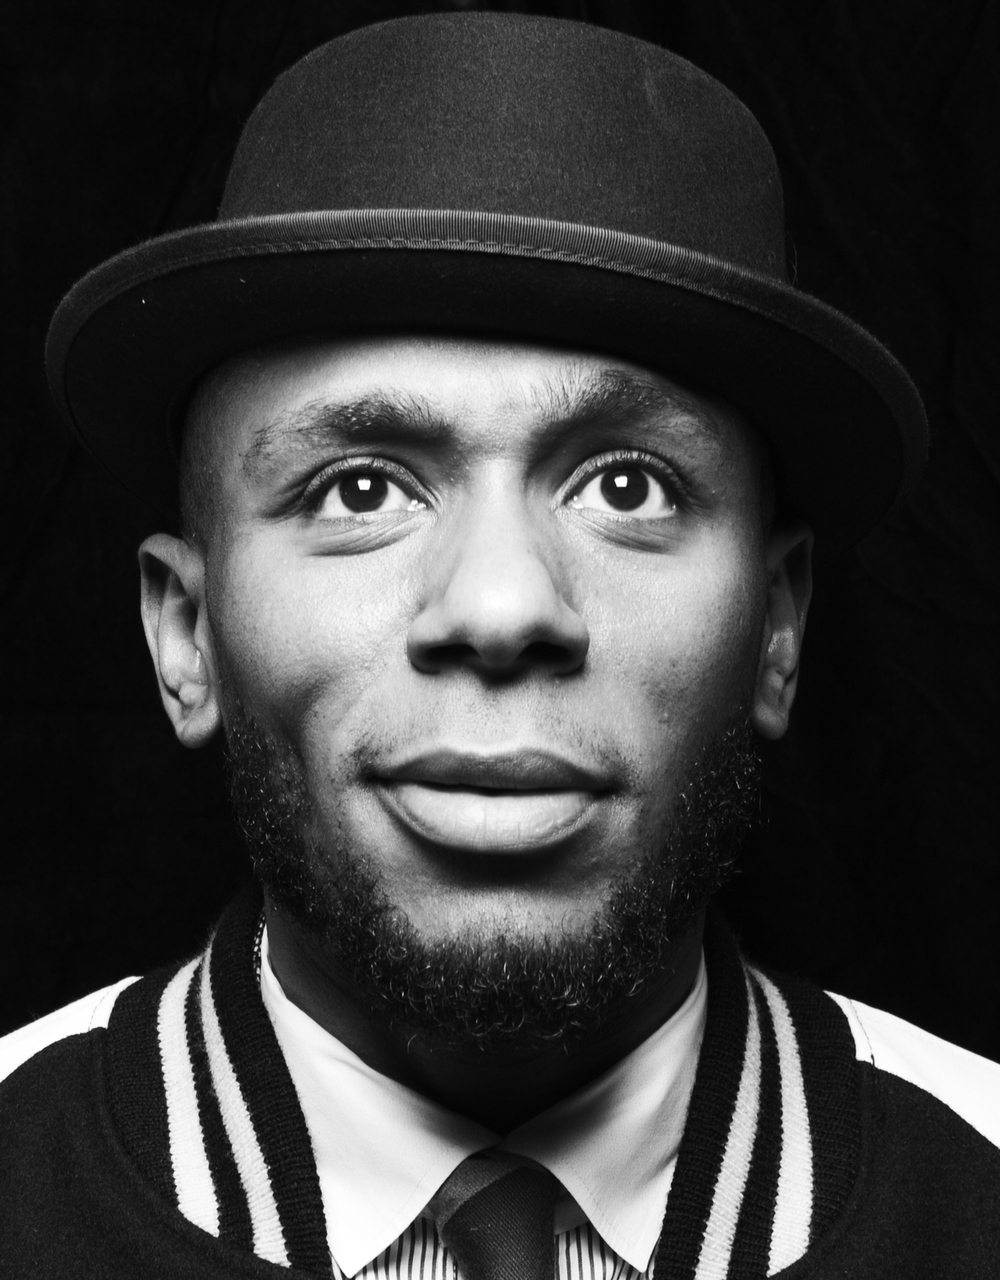 johnmidgley-mosdef-4.jpg